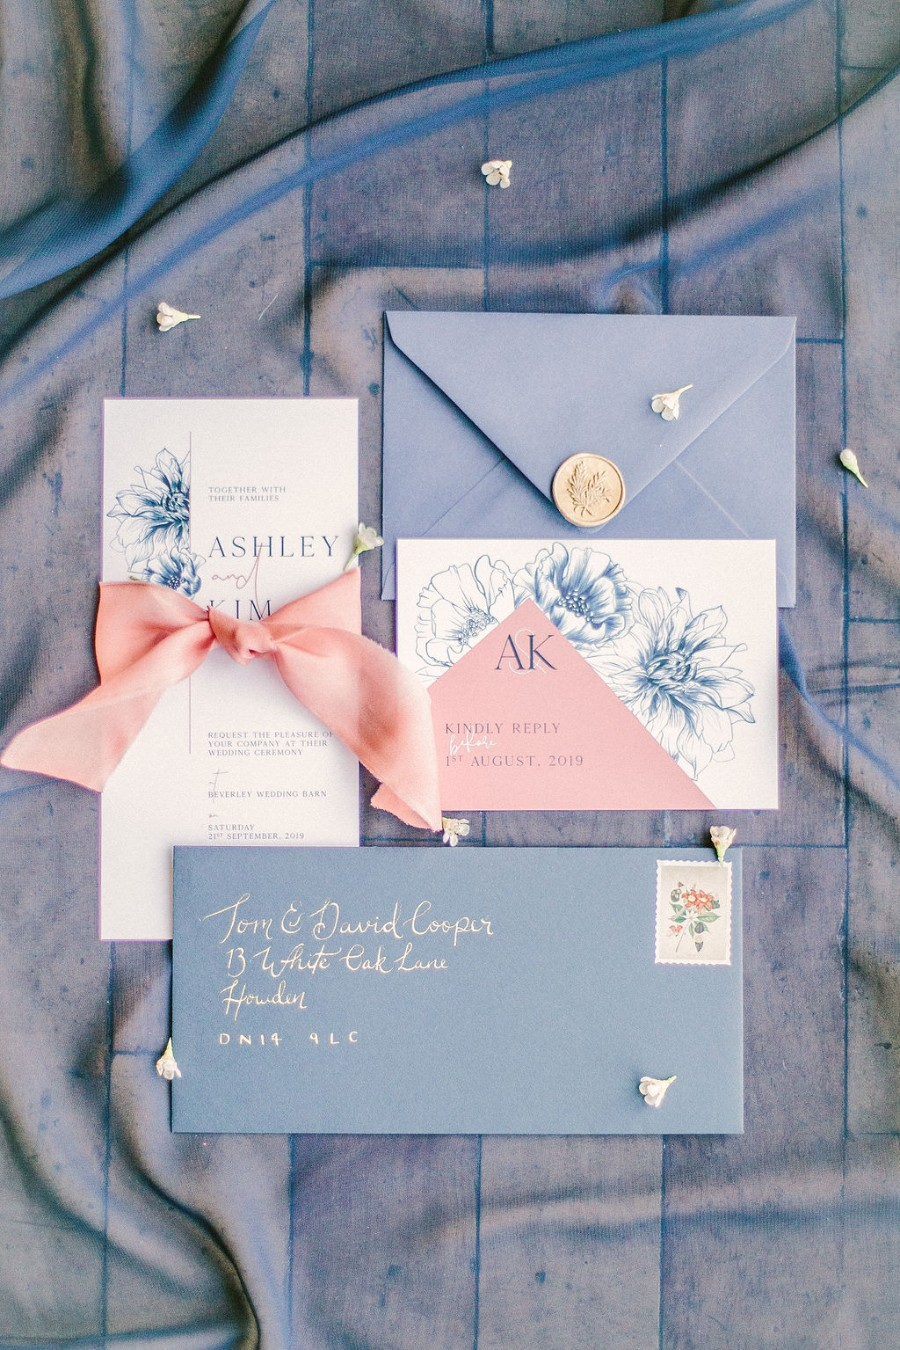 Coral and blue for a colour pop wedding style! Credit Tabitha Stark Photography via English Wedding Blog (2)